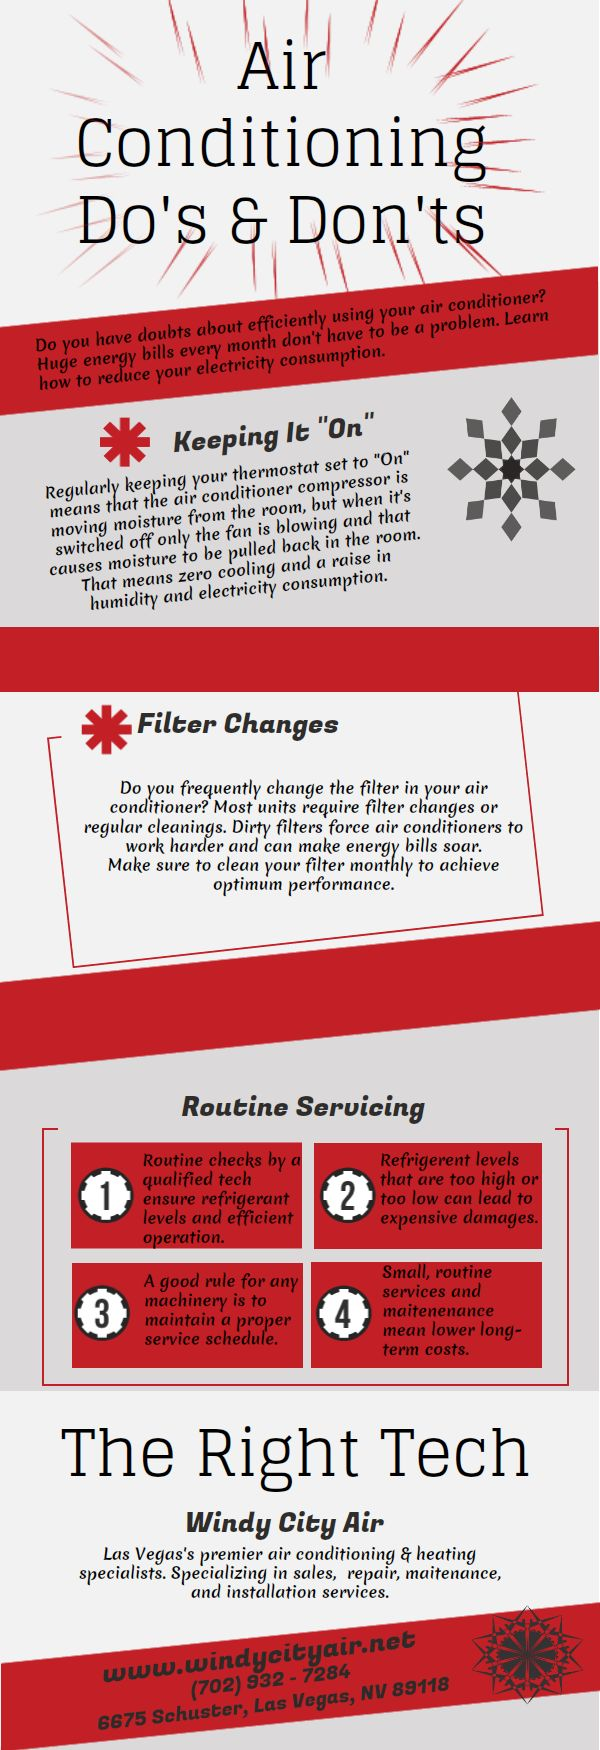 Awesome tips for heating and air Las Vegas!